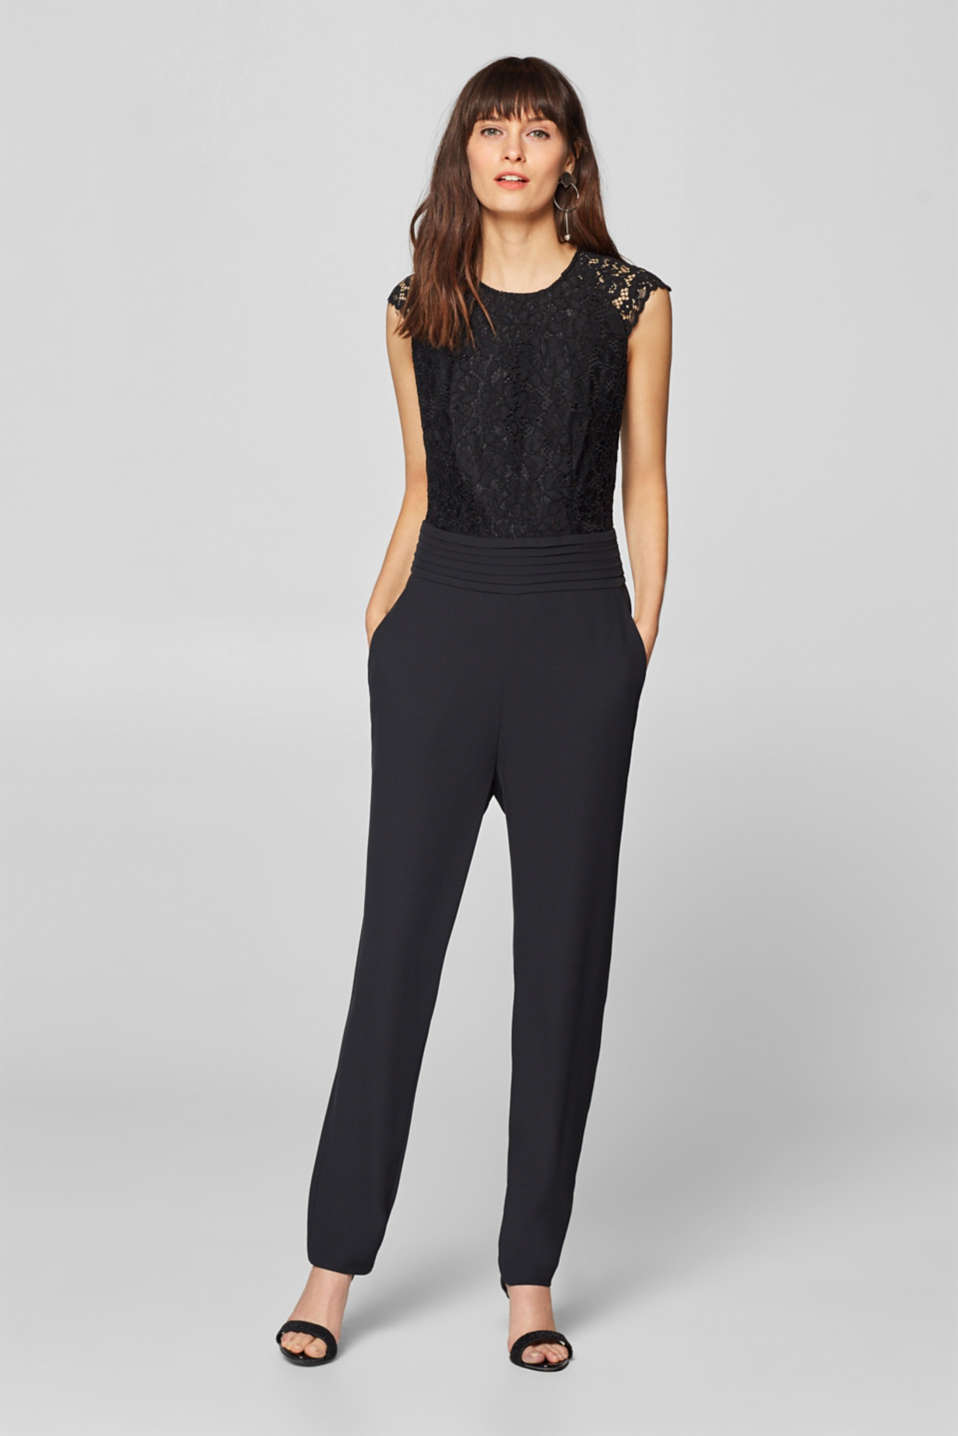 Esprit - Fabric and lace jumpsuit